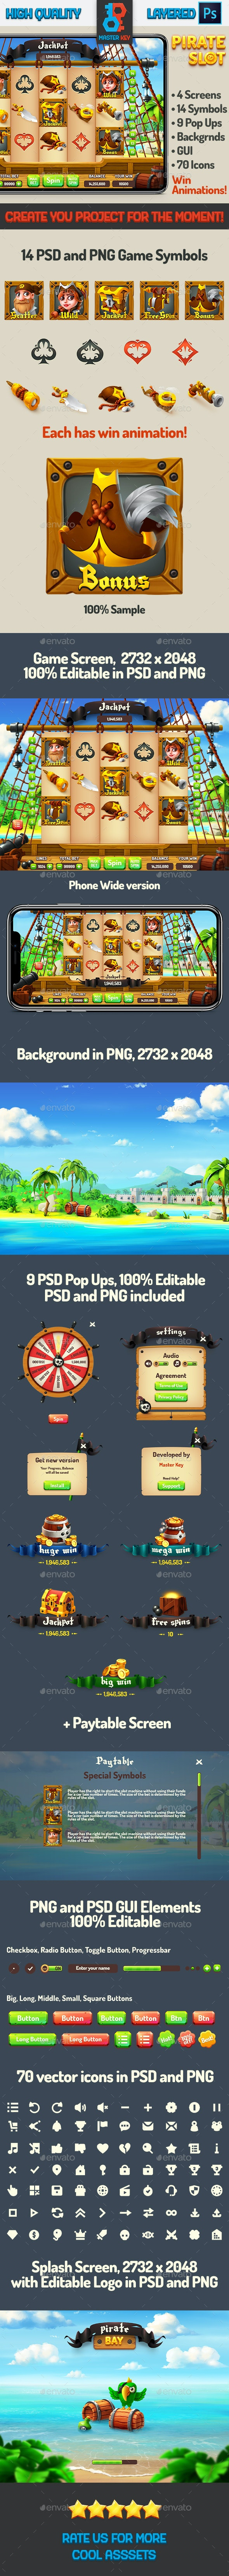 Full Pirate Bay Slot Asset - Game Kits Game Assets